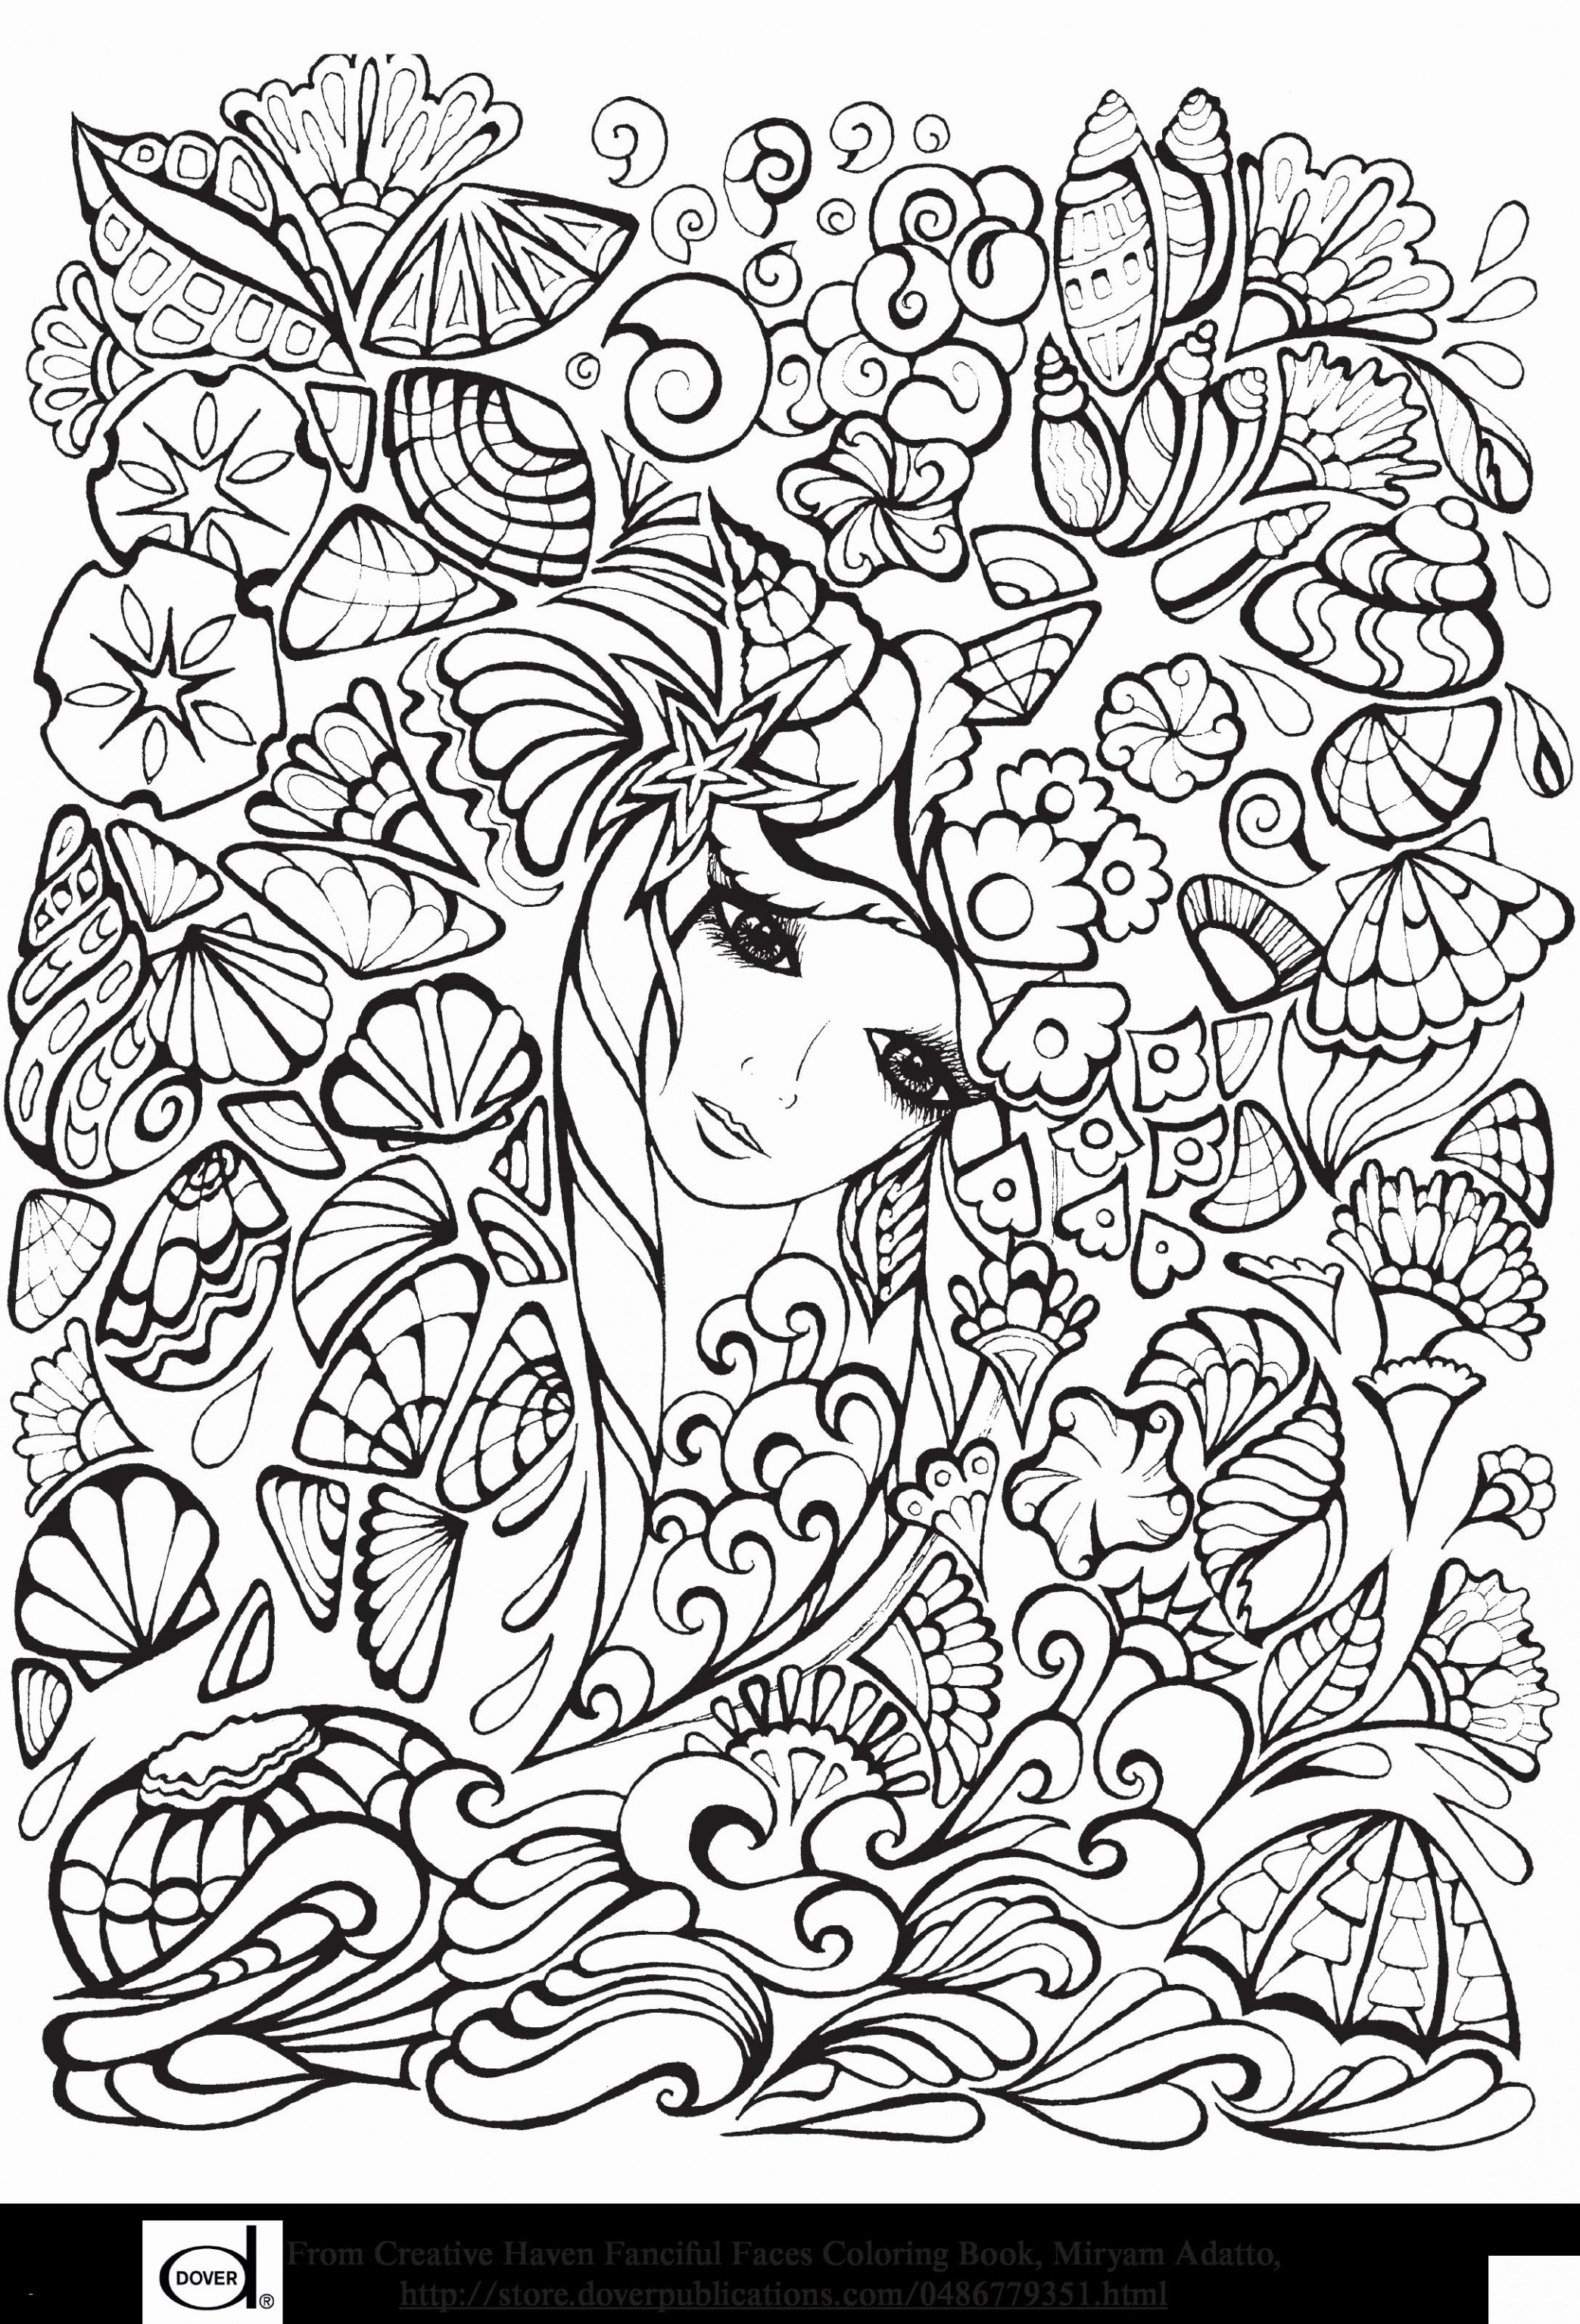 Madagascar Coloring Pages Penguins Of Madagascar Coloring Pages New Madagascar Coloring Pages